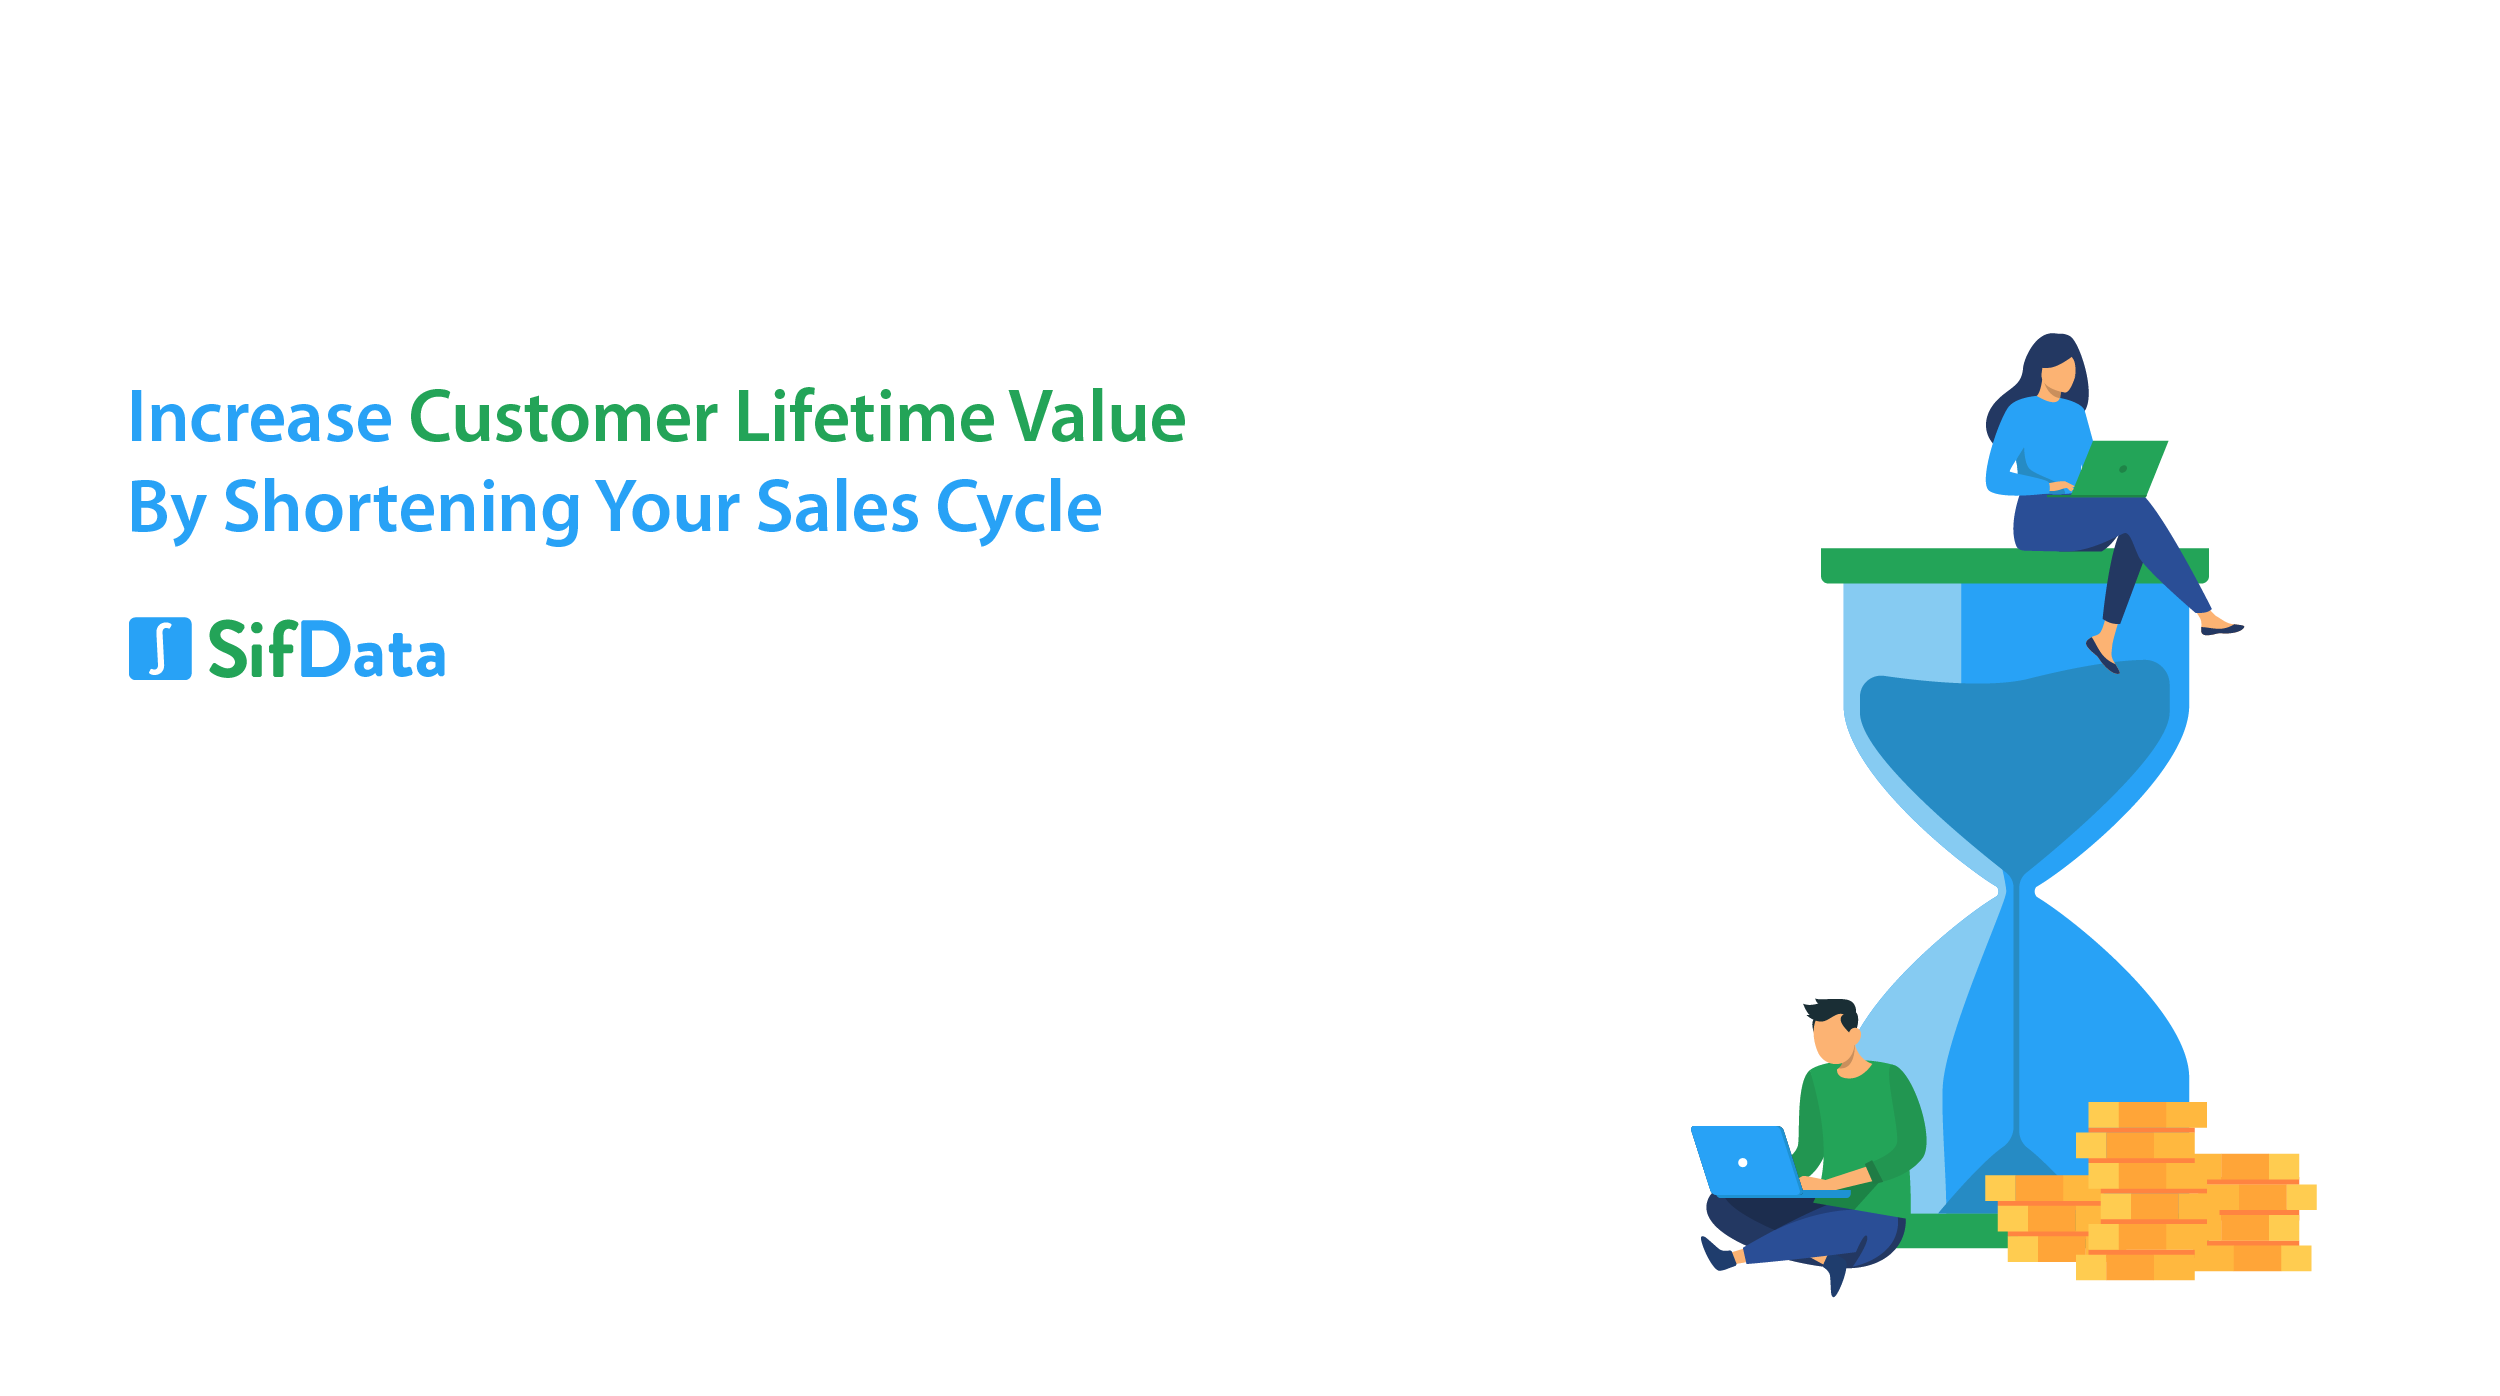 INCREASE CUSTOMER LIFETIME VALUE BY SHORTENING YOUR SALES CYCLE